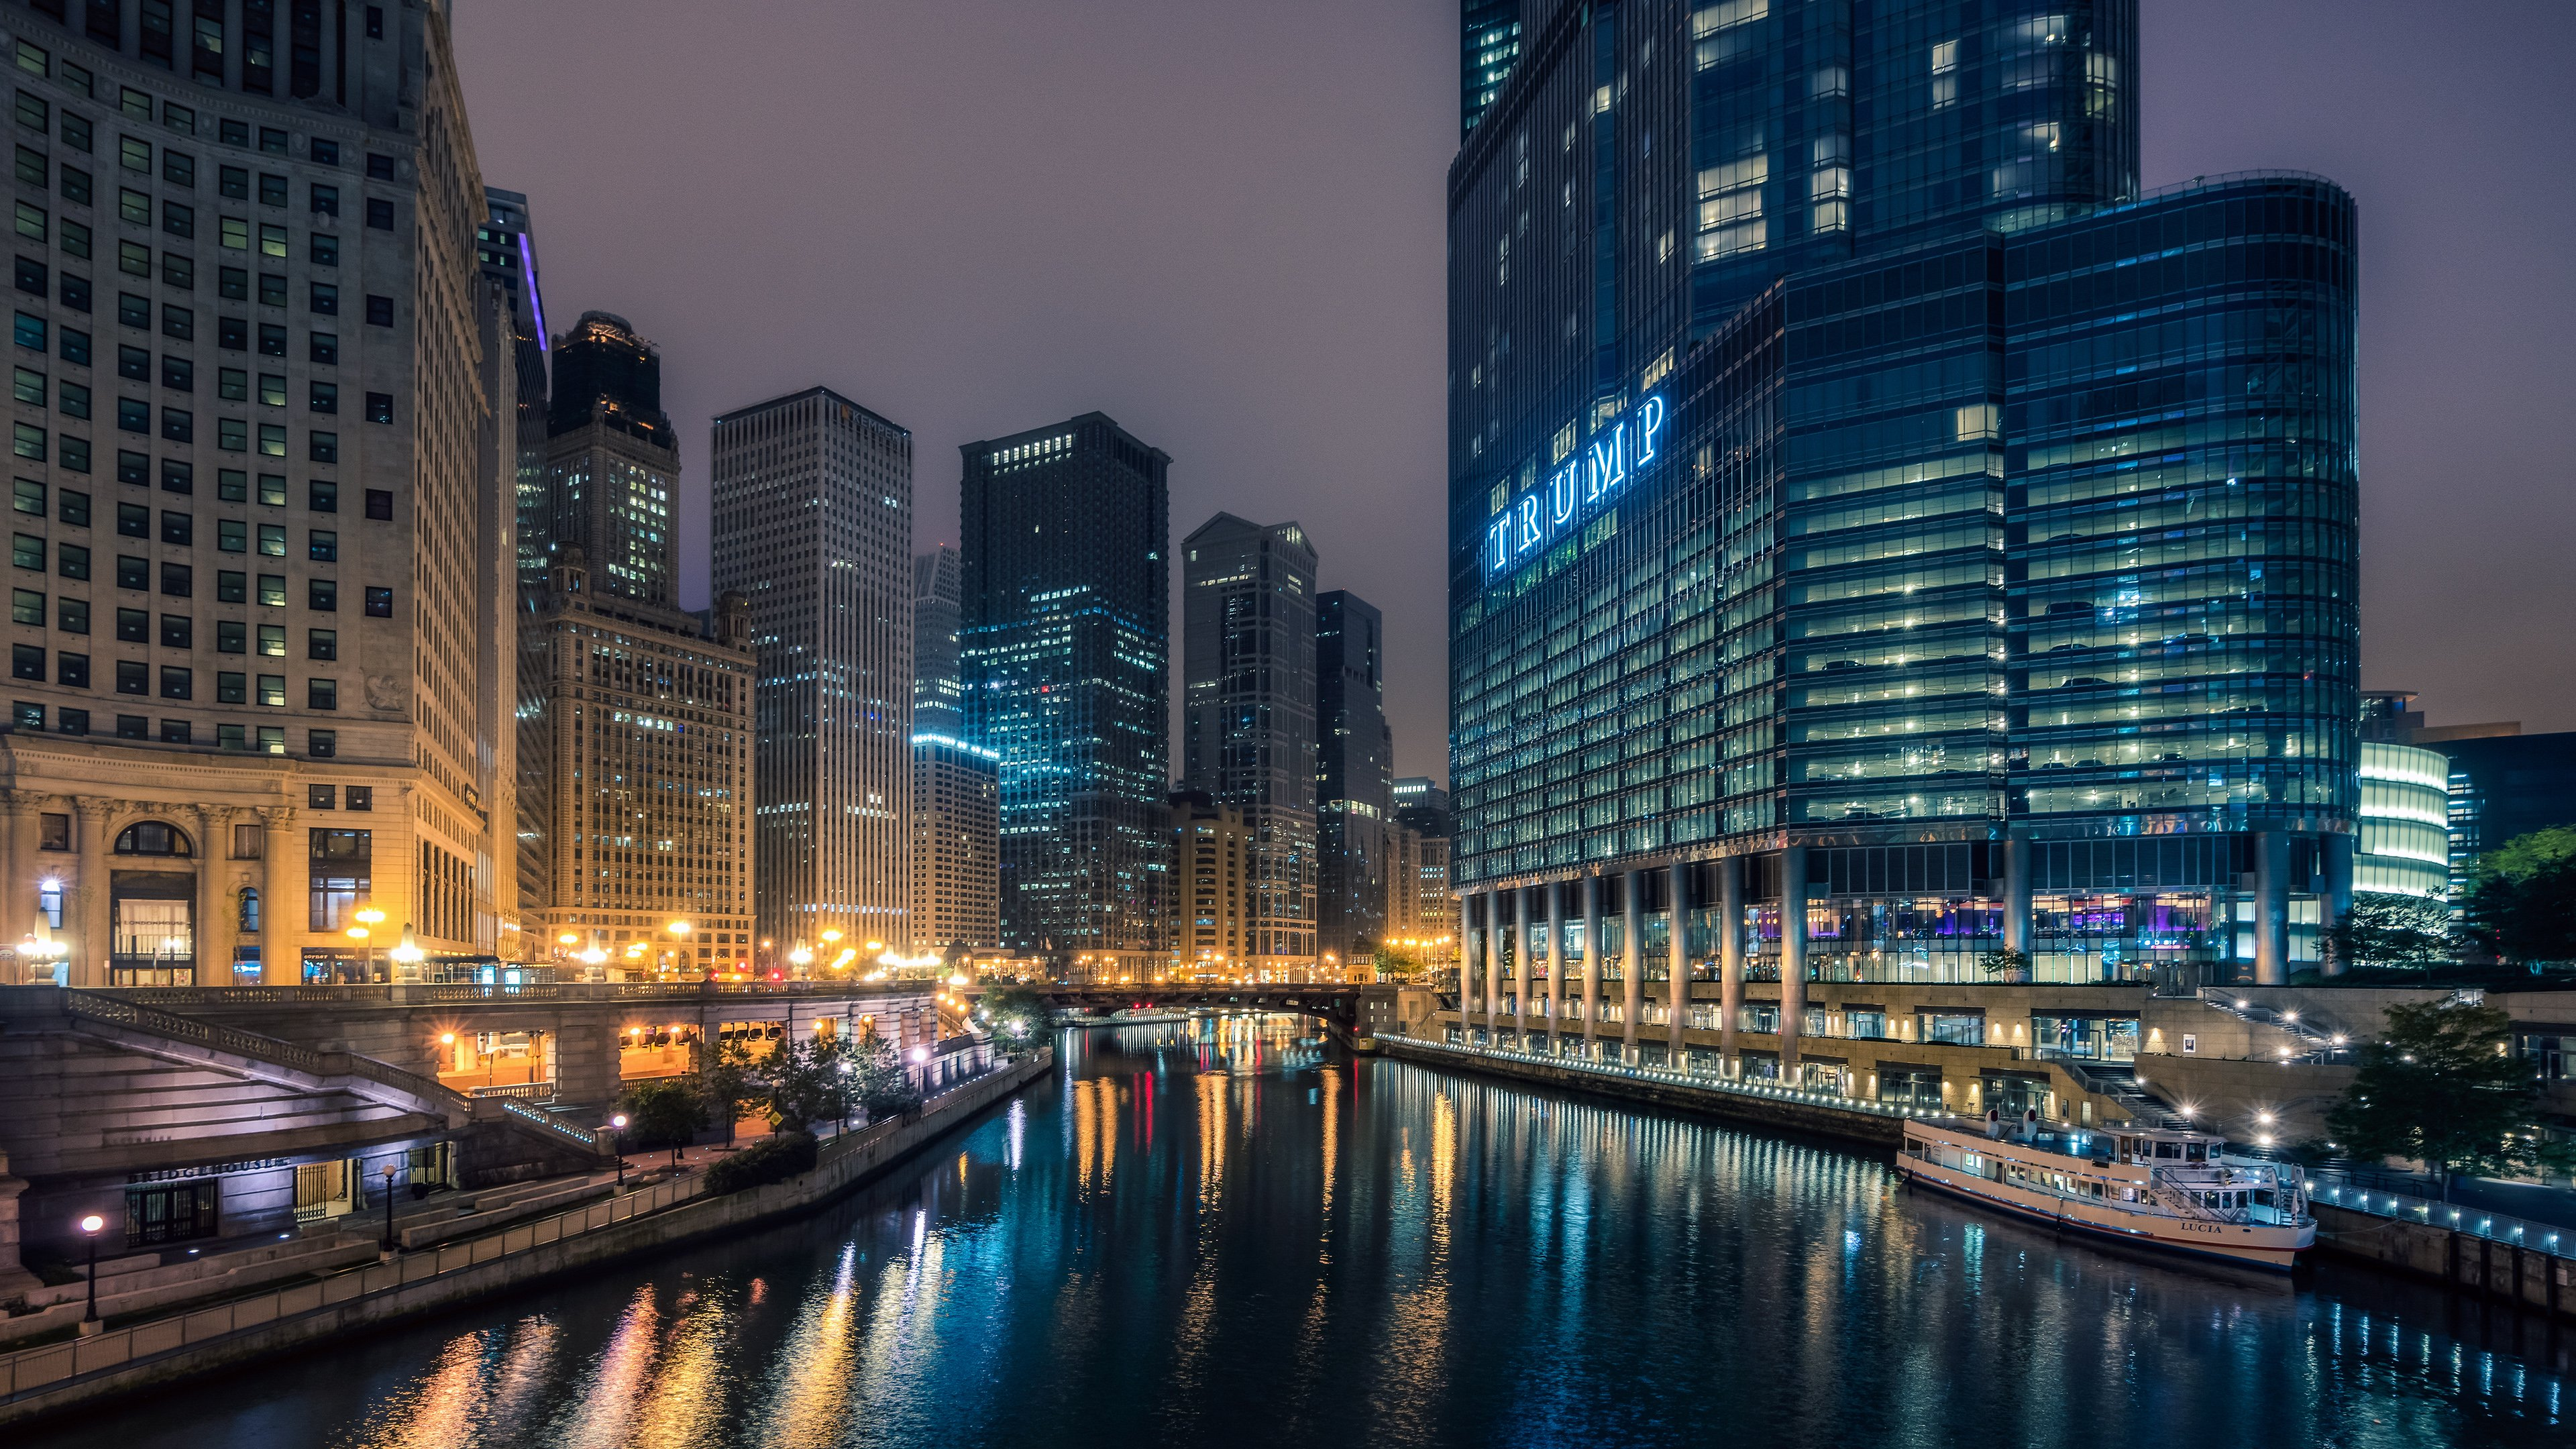 Chicago At Night Wallpaper: Page 8 Of Night Wallpapers And Desktop Backgrounds